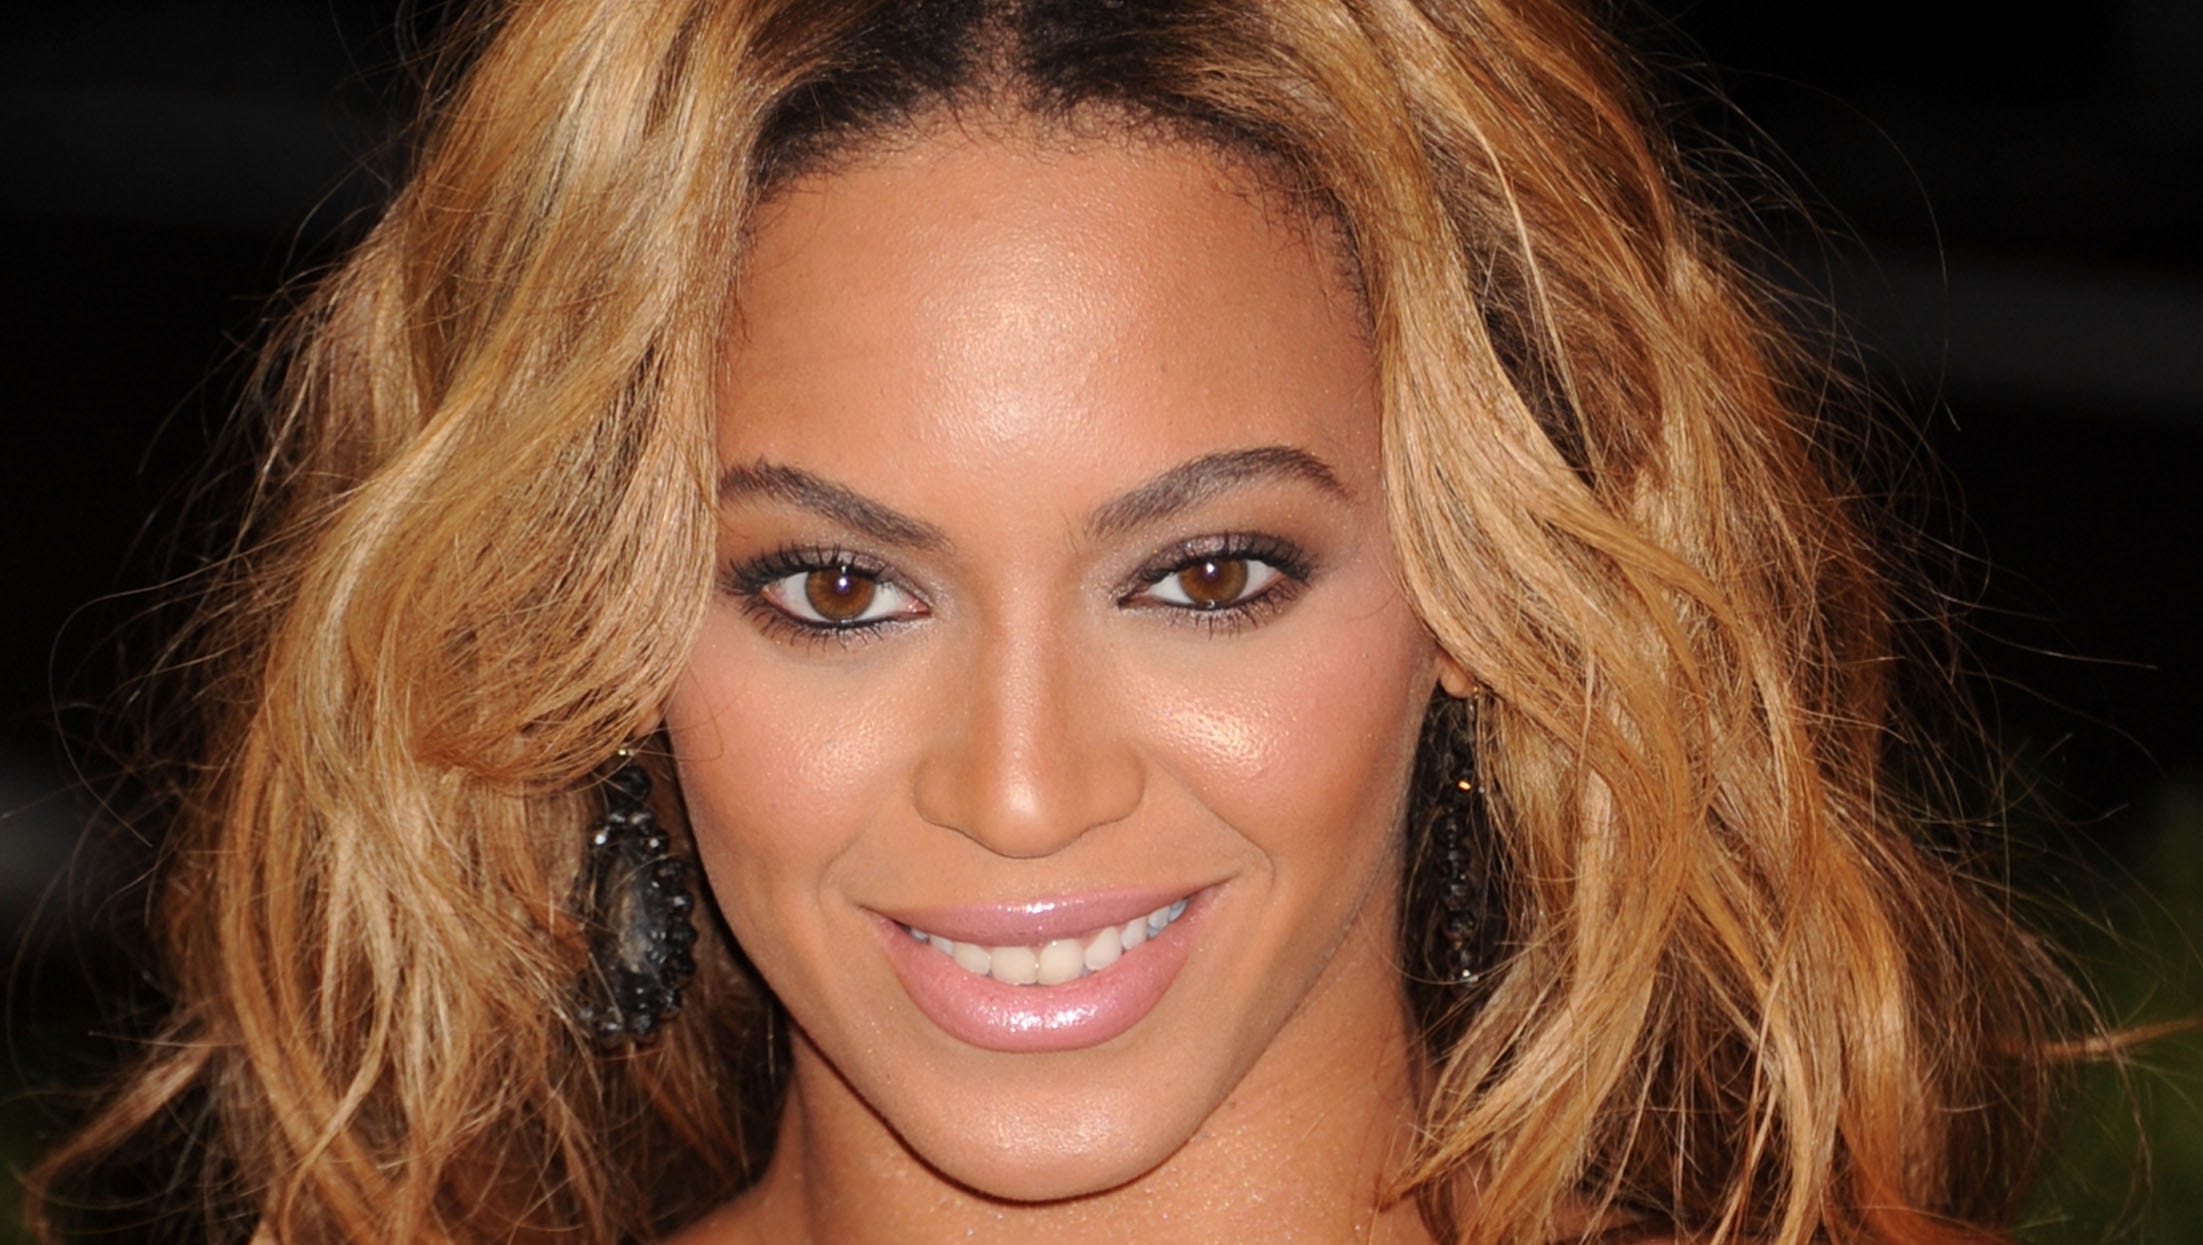 Beyonce then: It was the pixie praised (mostly) 'round the Twitterverse. Known physically as much for her locks as her legs, Beyonce, 31, last week macheted her mane, bathed it in blond dye and posted the eye-popping results on Instagram ...